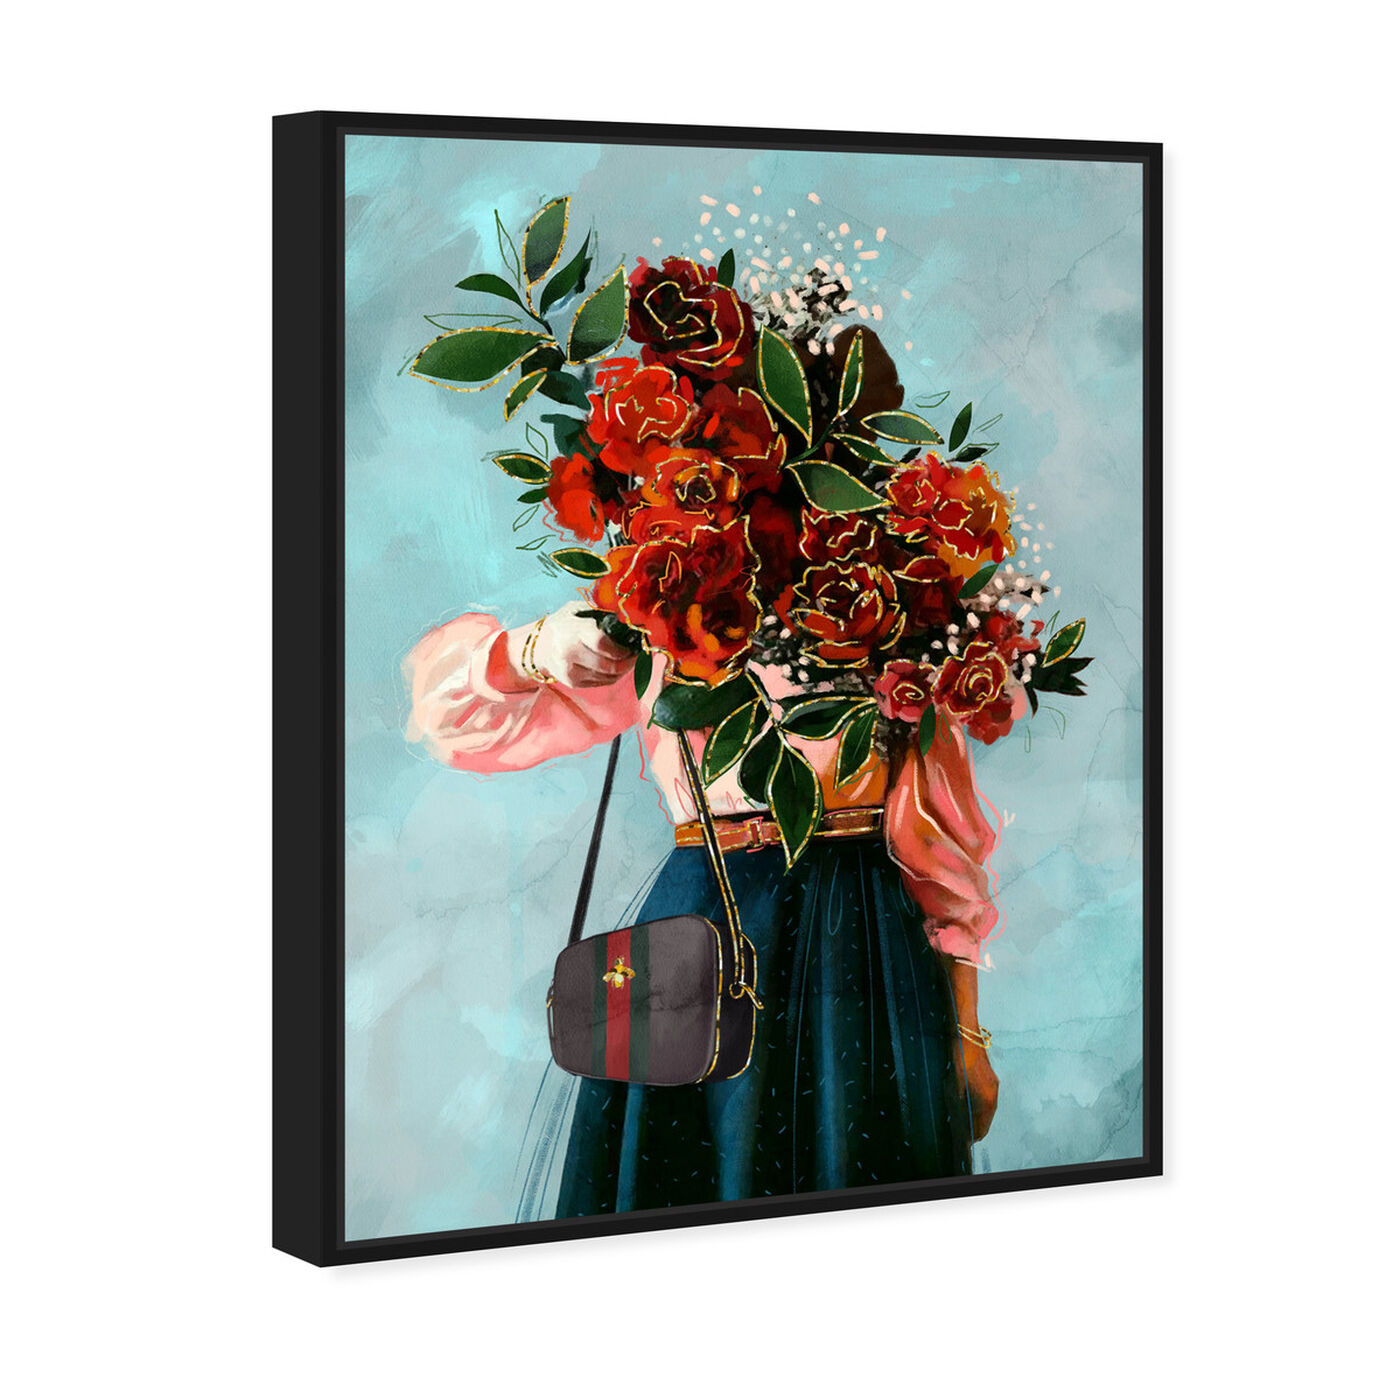 Angled view of Roses in View featuring floral and botanical and florals art.